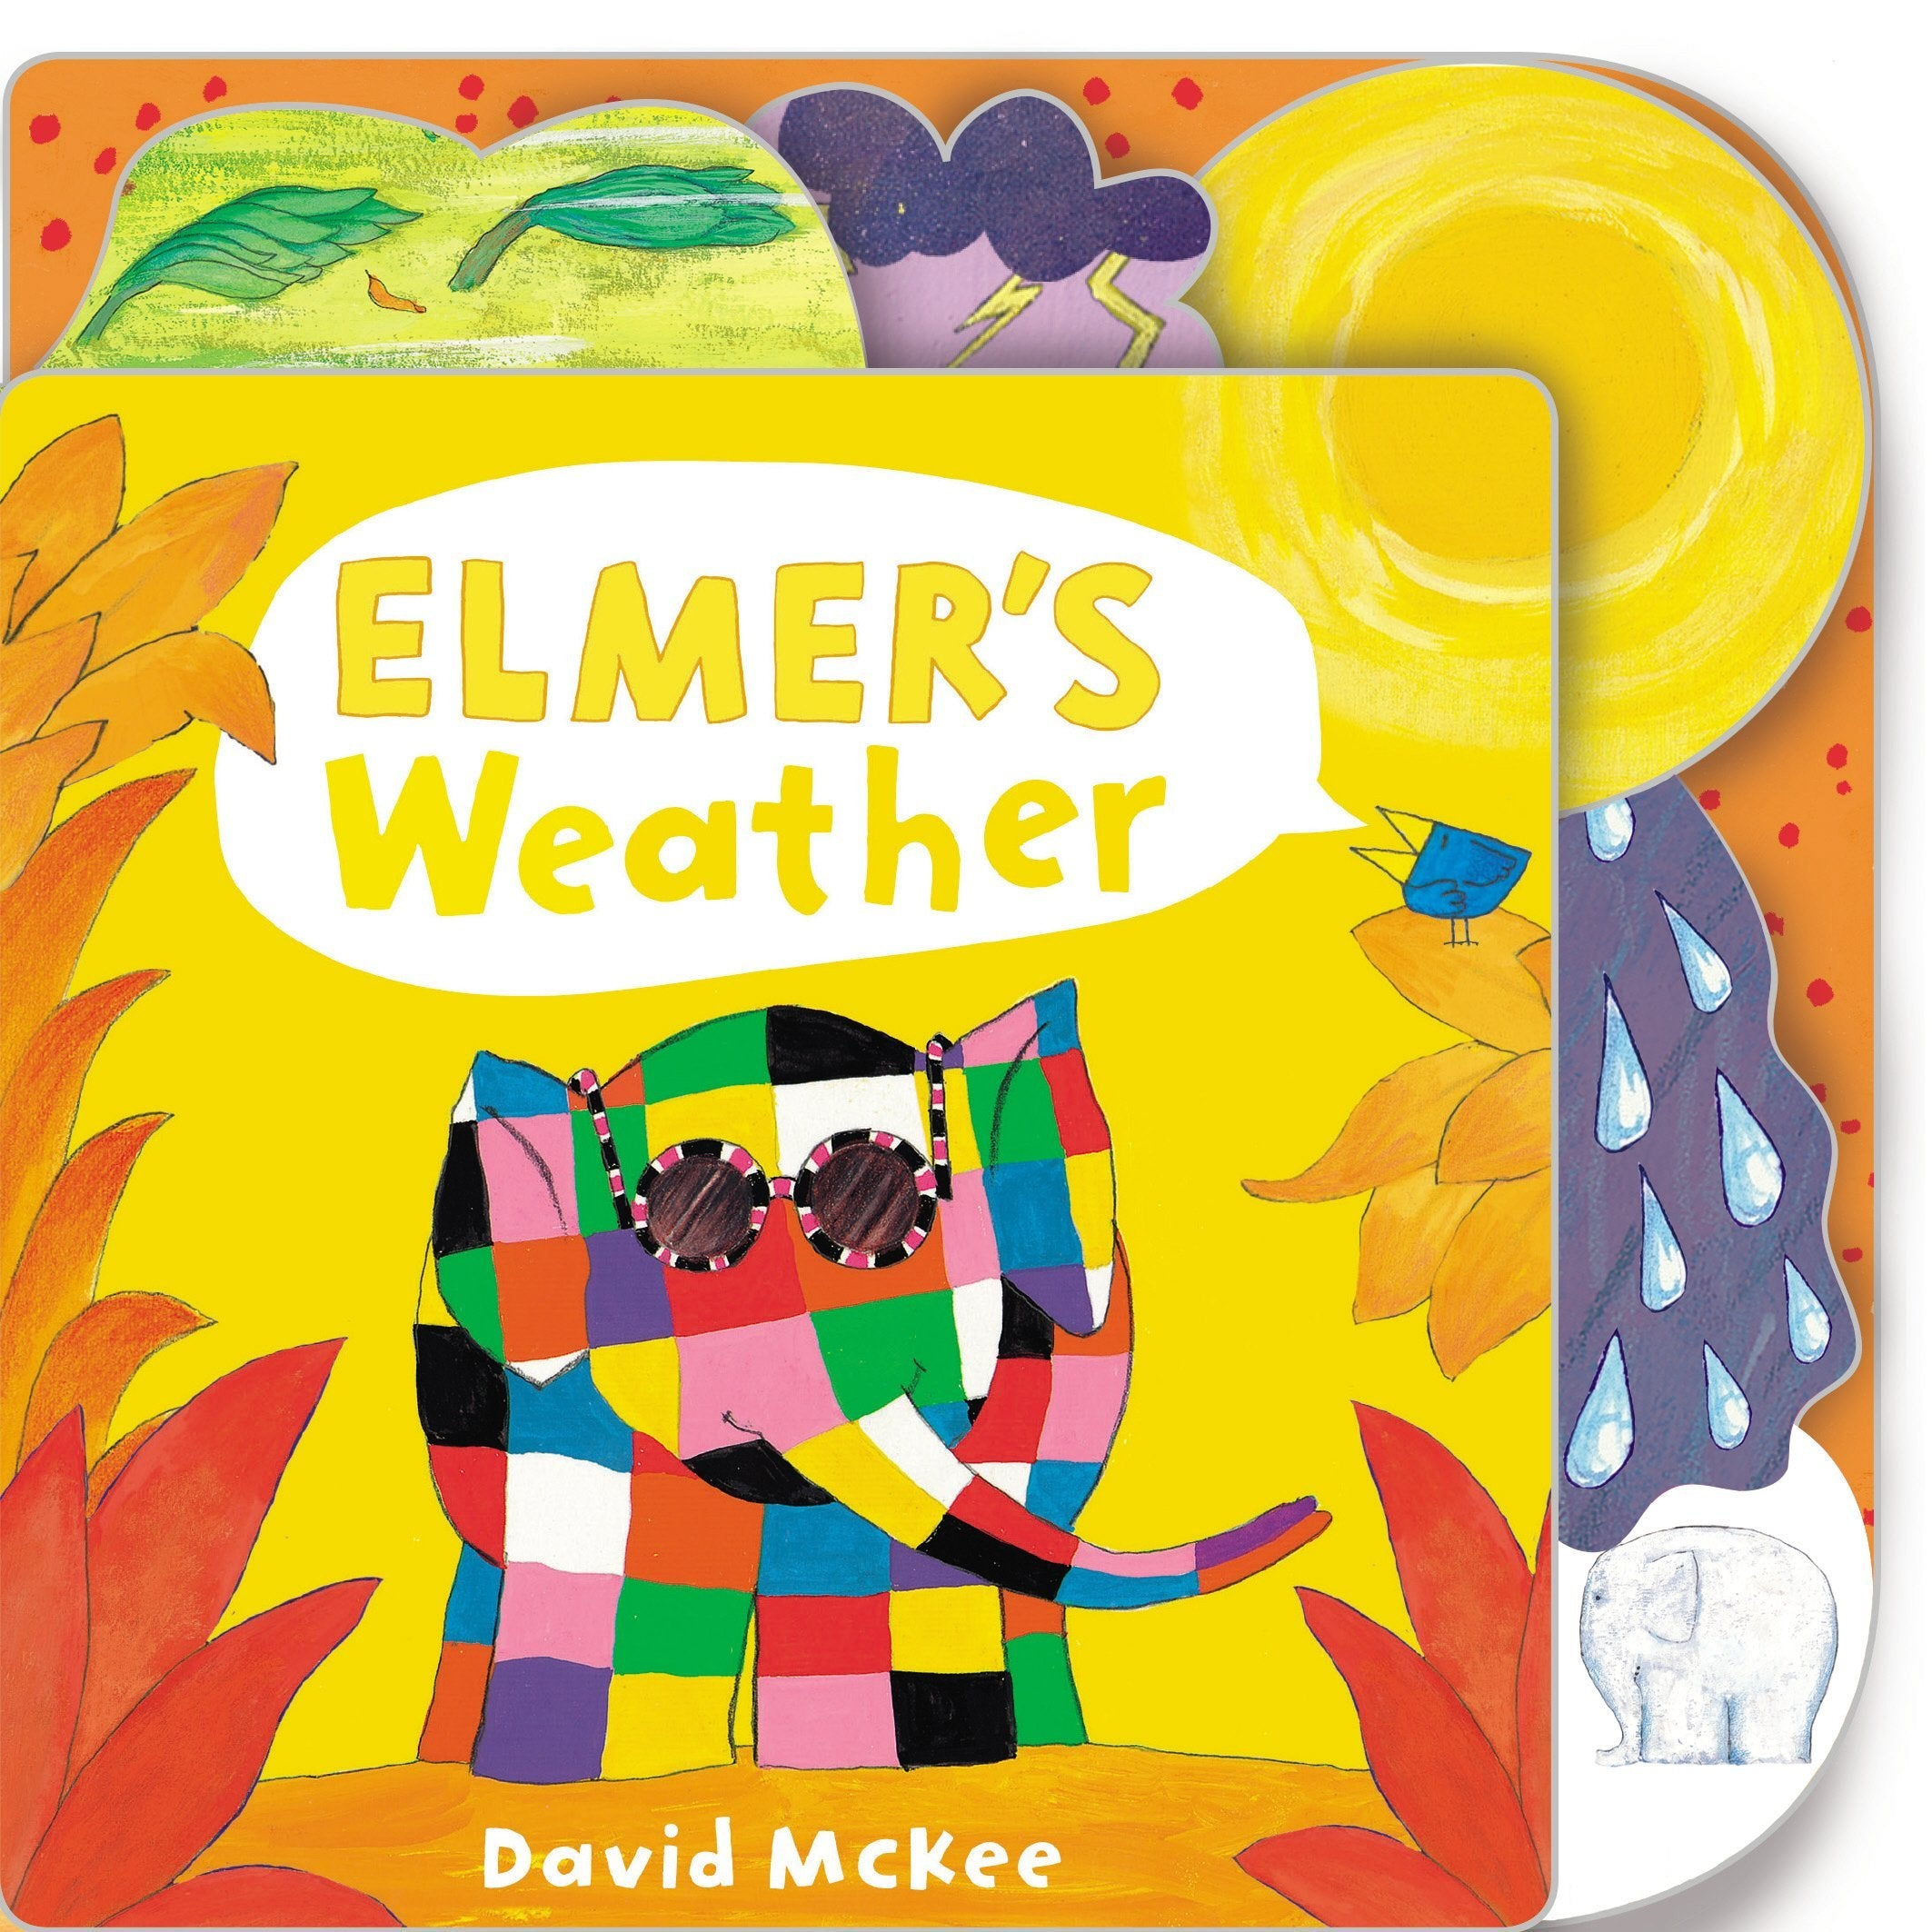 ELMERS WEATHER